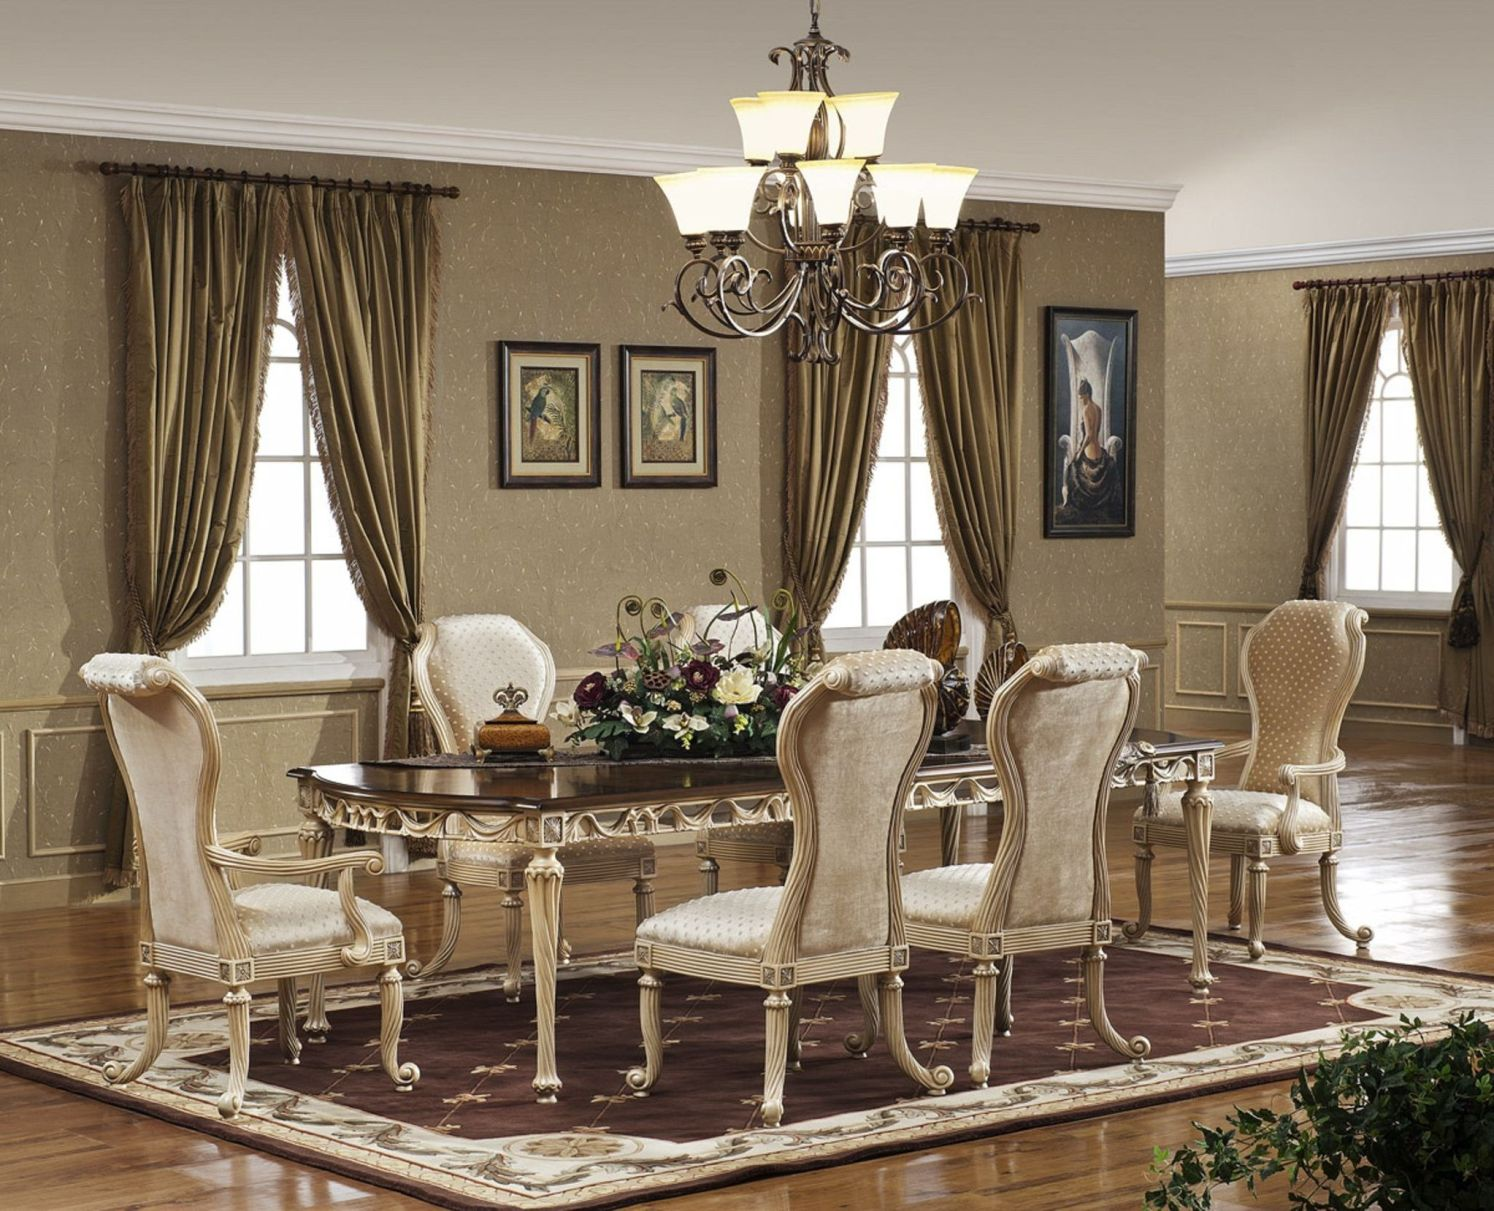 Dining Room Decoration How To Fall In Love With Your